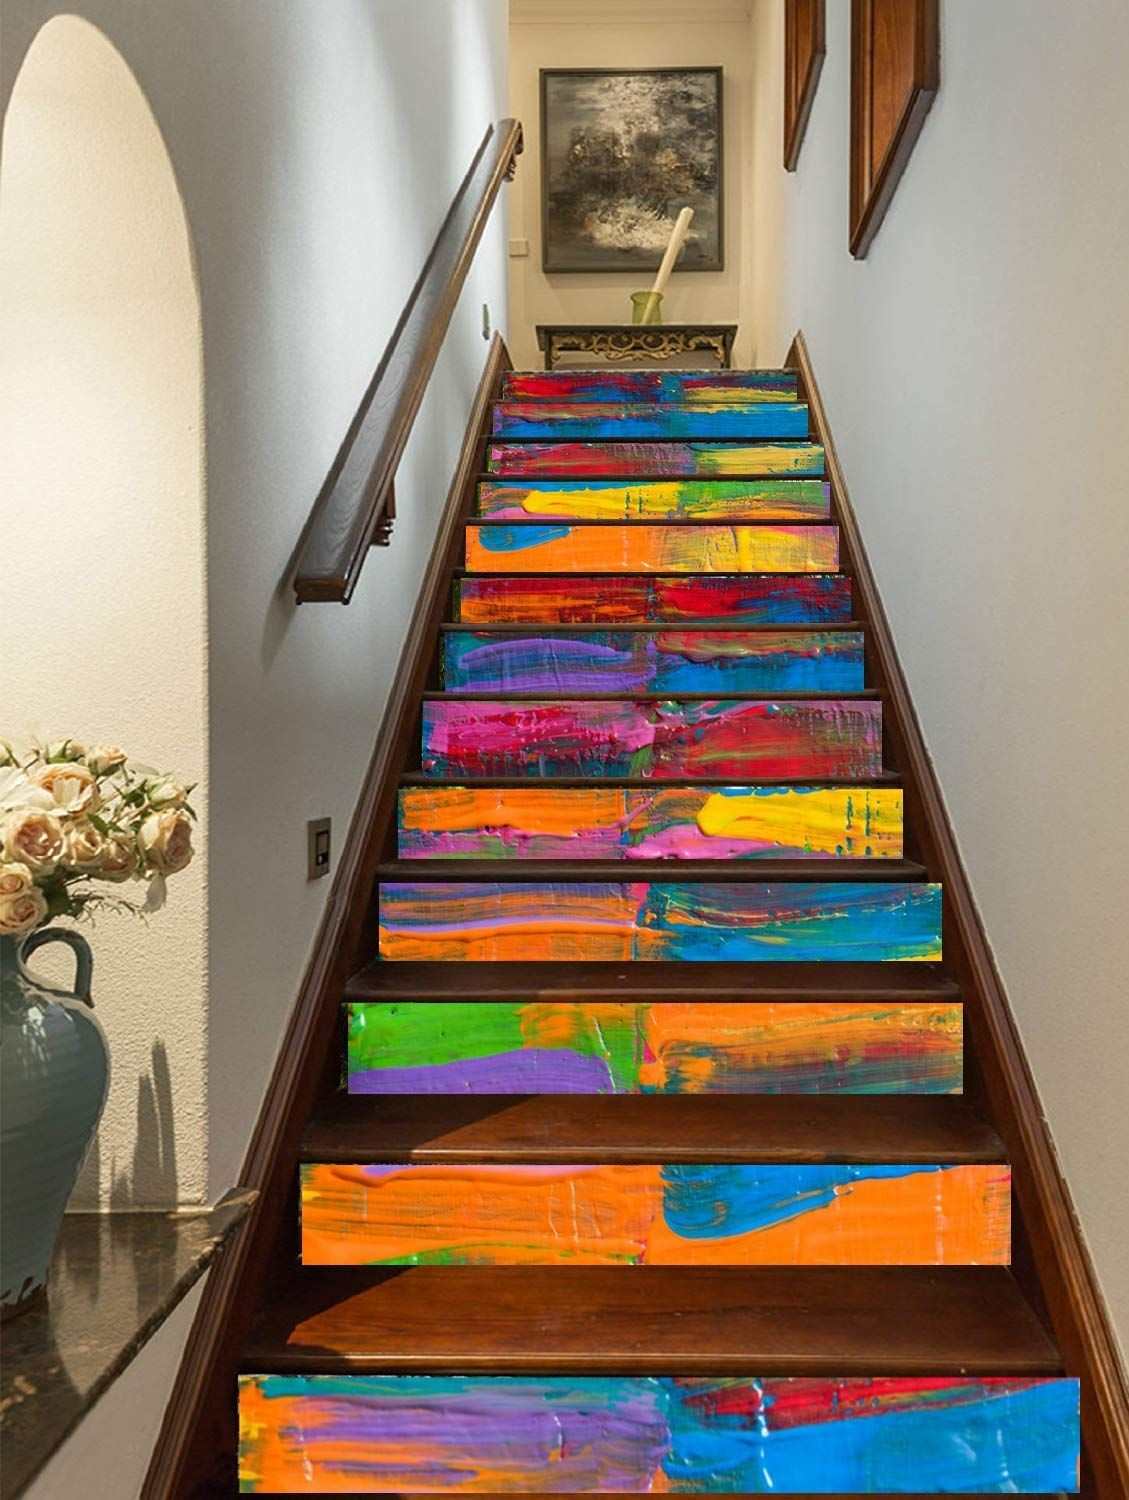 15 Of The Best Staircase Stickers And Tile Decals On Amazon | Best Hardwood For Stairs | Treads | Oak | Stair Tread | Stain | Laminate Flooring